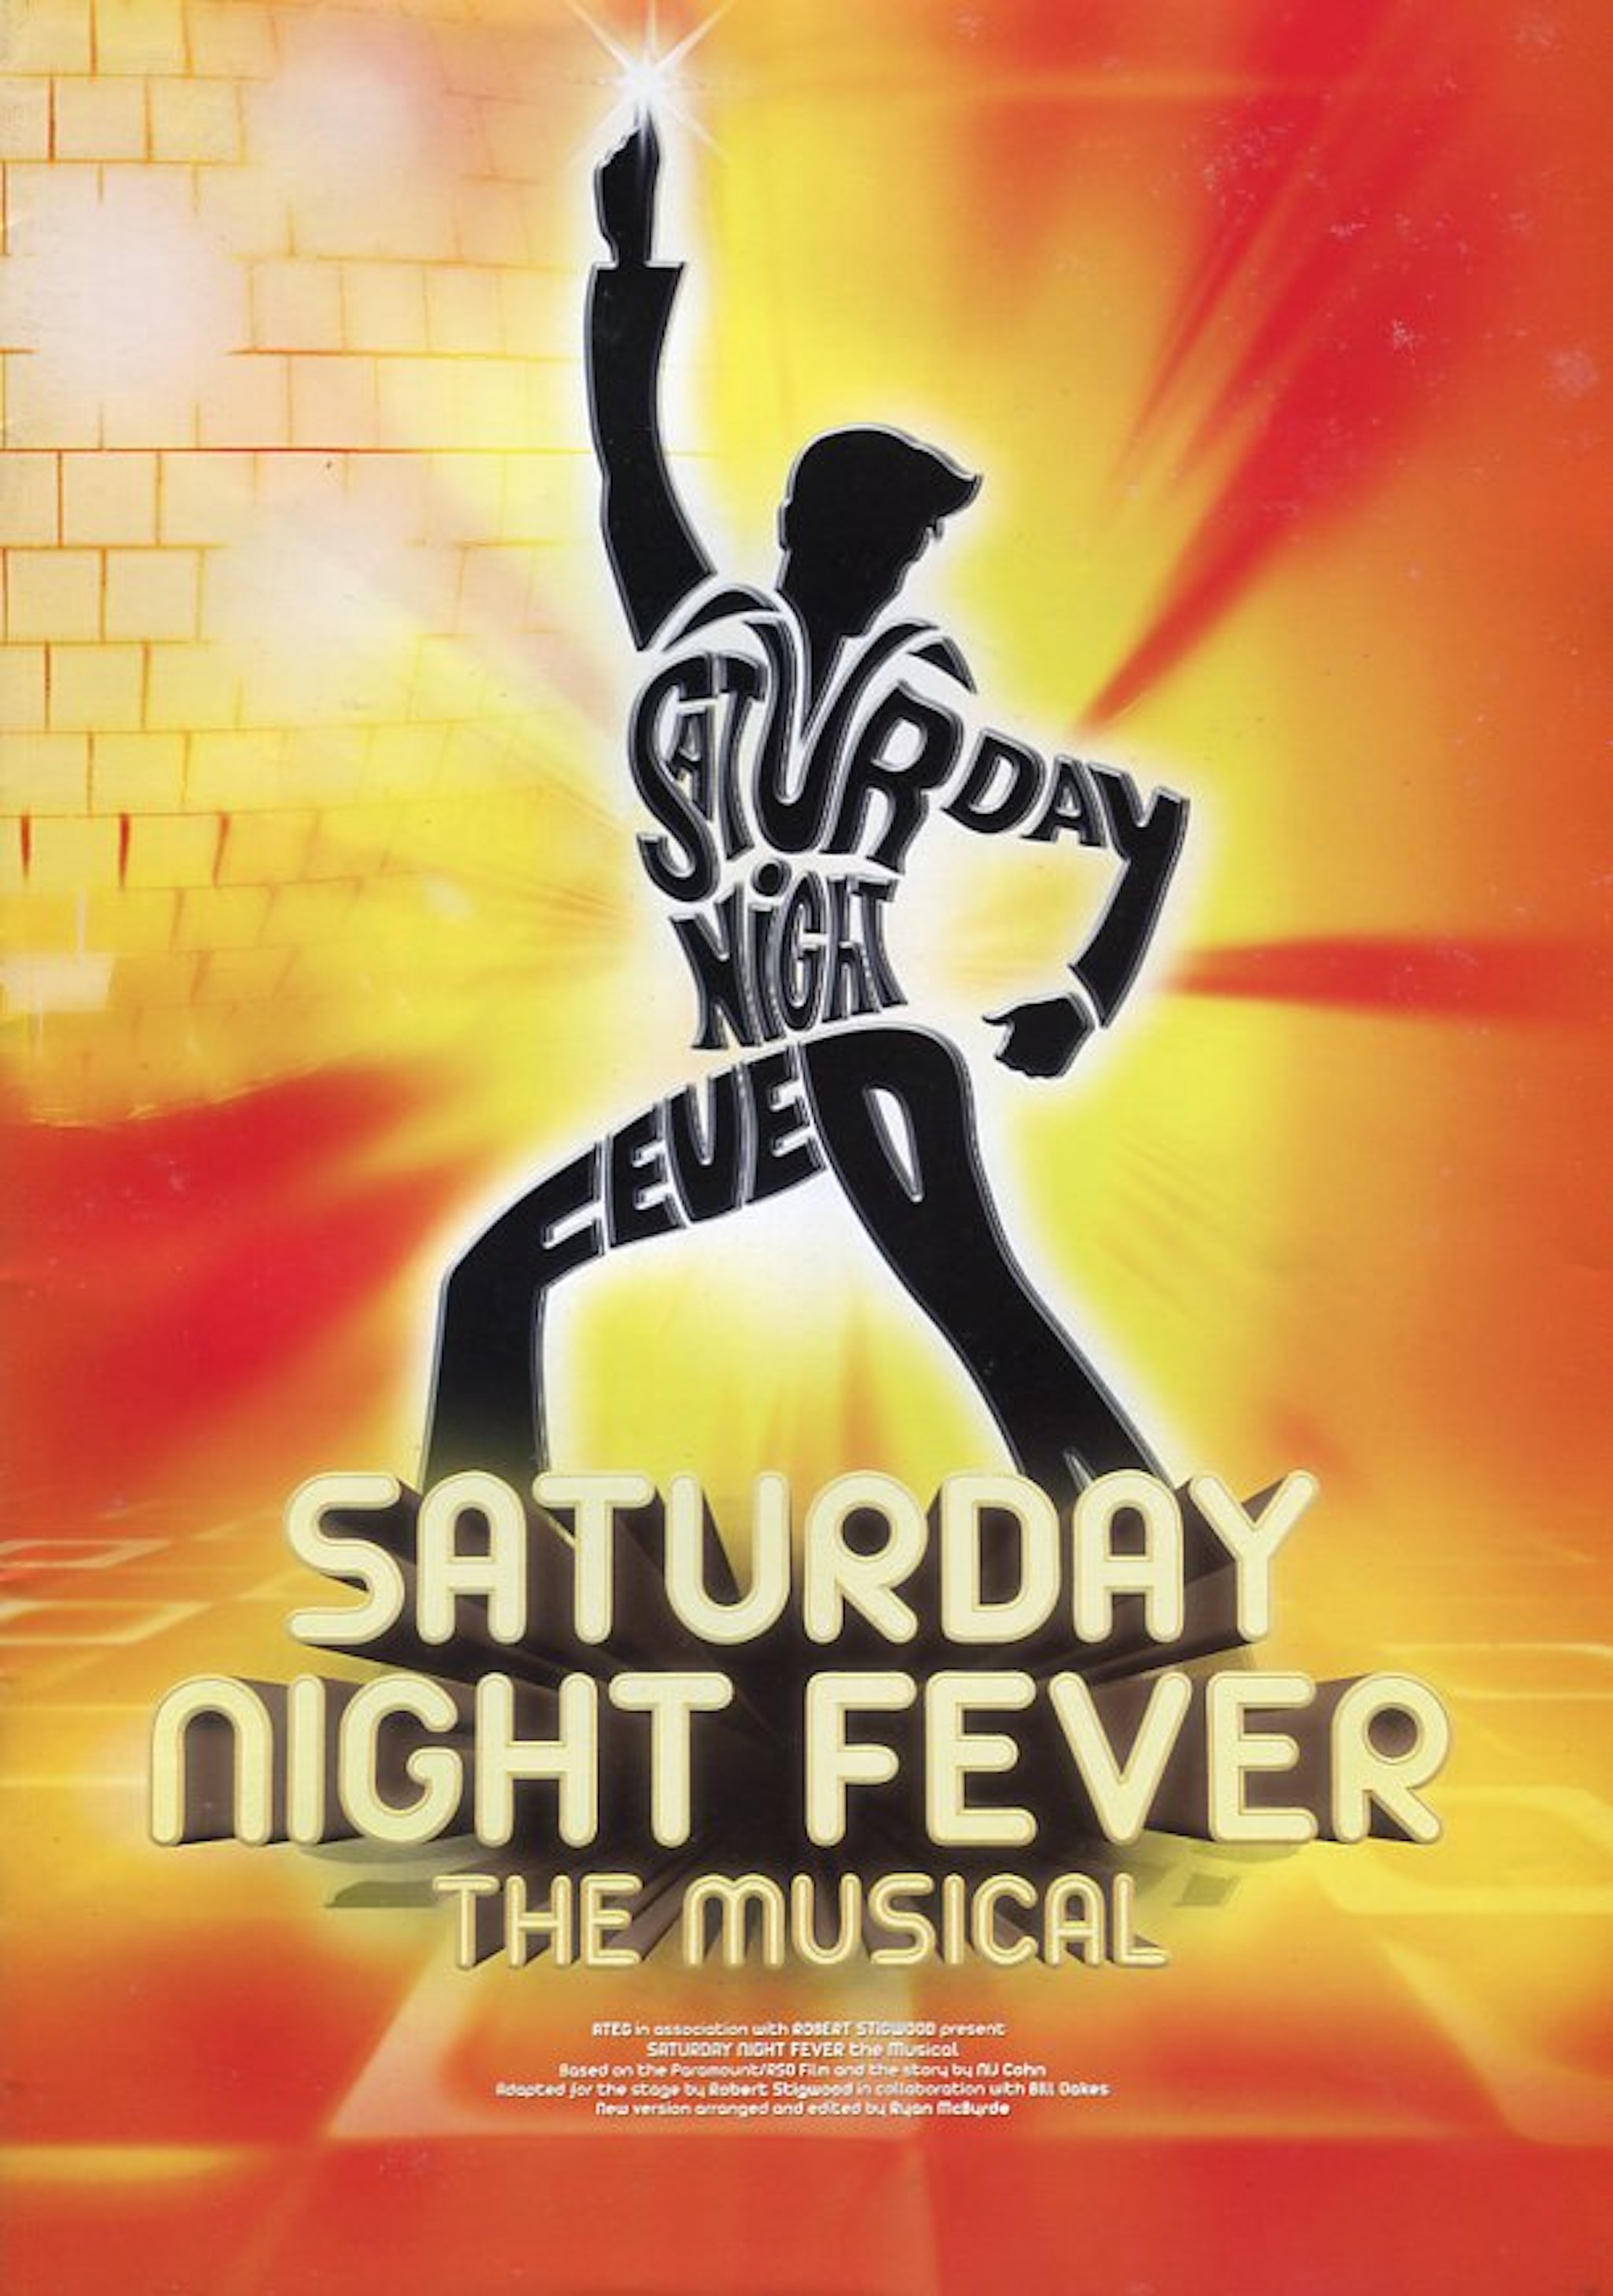 2015 Saturday Night Fever The Musical cover